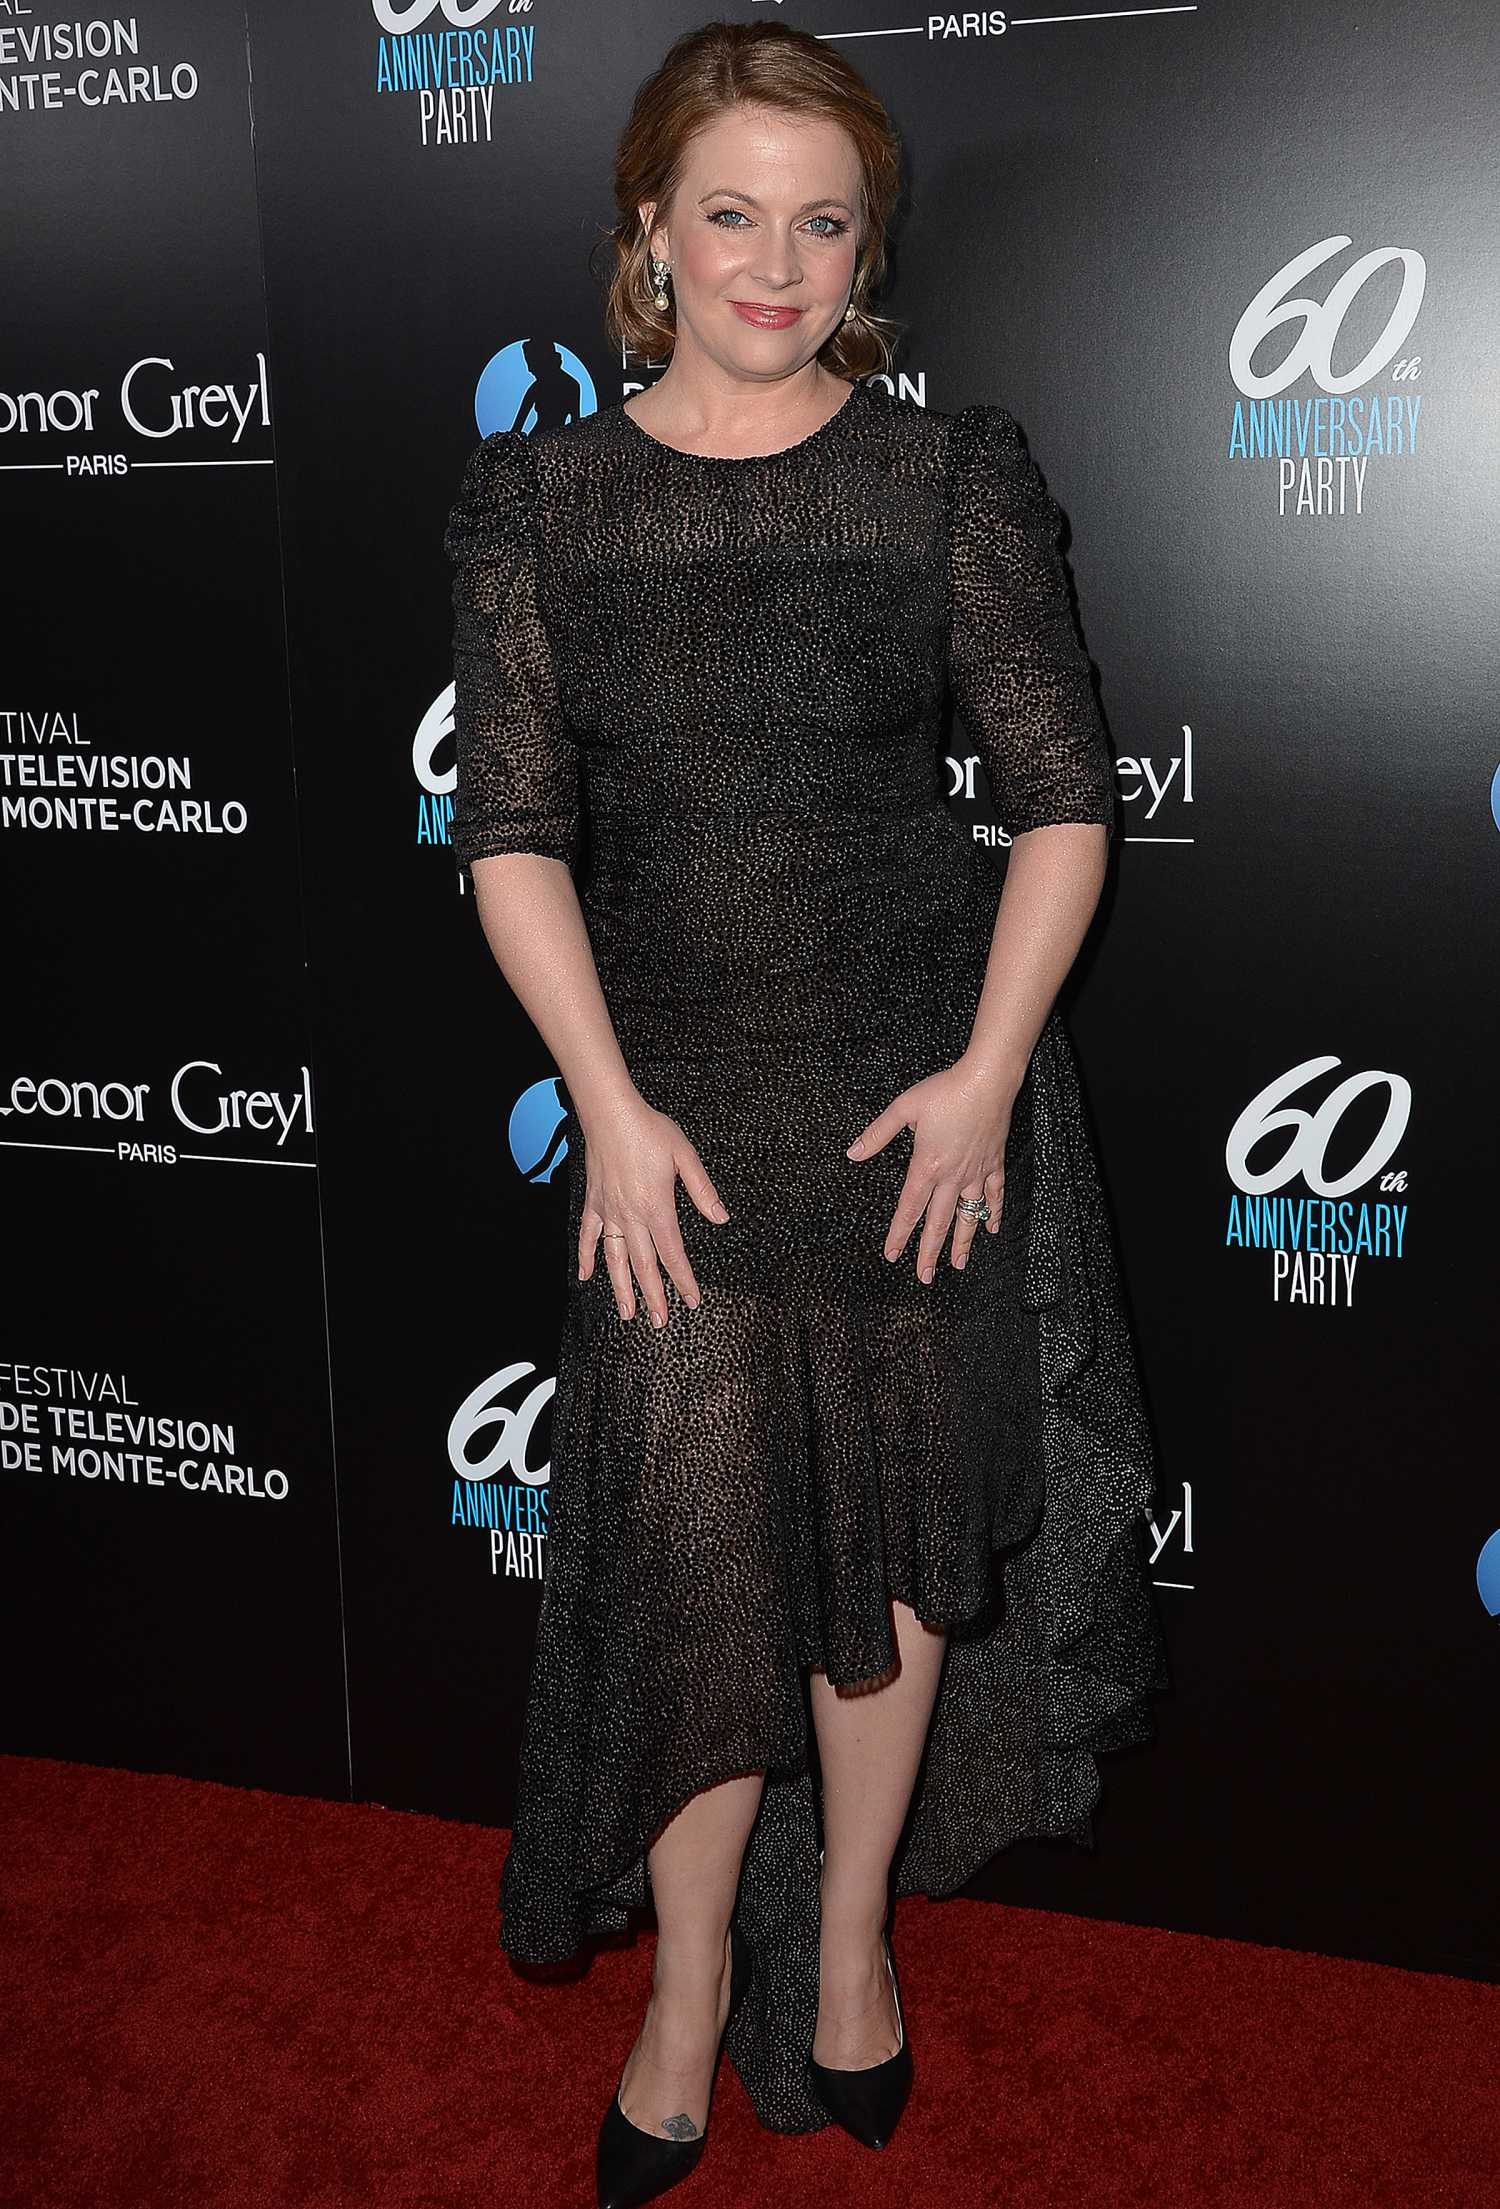 Melissa Joan Hart Attends 2020 Monte-Carlo Television Festival Party Los Angeles – Celeb Donut